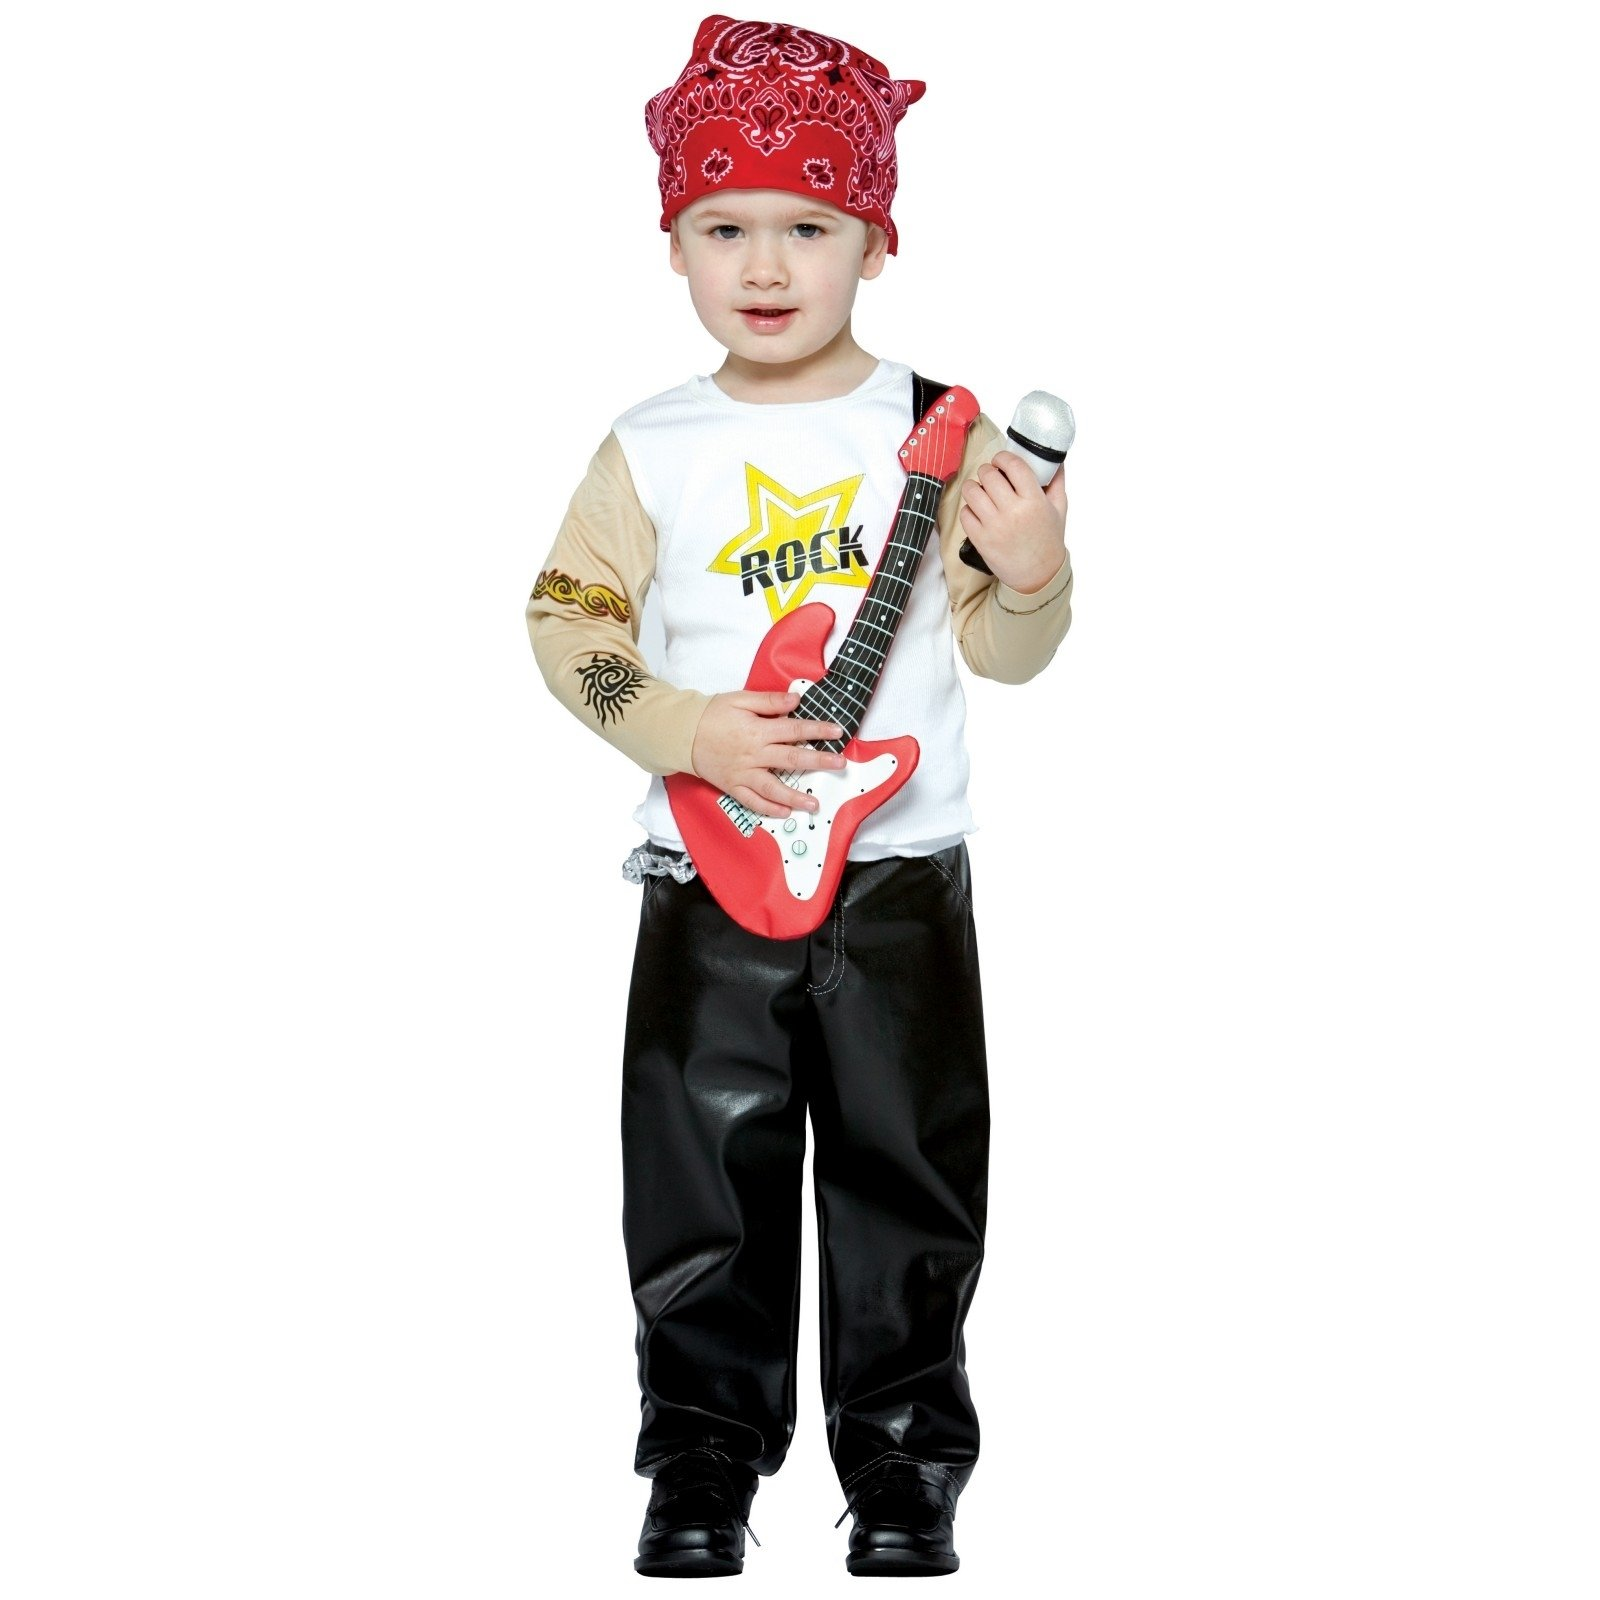 10 Pretty Rock Star Halloween Costume Ideas future rock star musical halloween costumes pinterest  sc 1 st  Unique Ideas 2018 & 10 Pretty Rock Star Halloween Costume Ideas